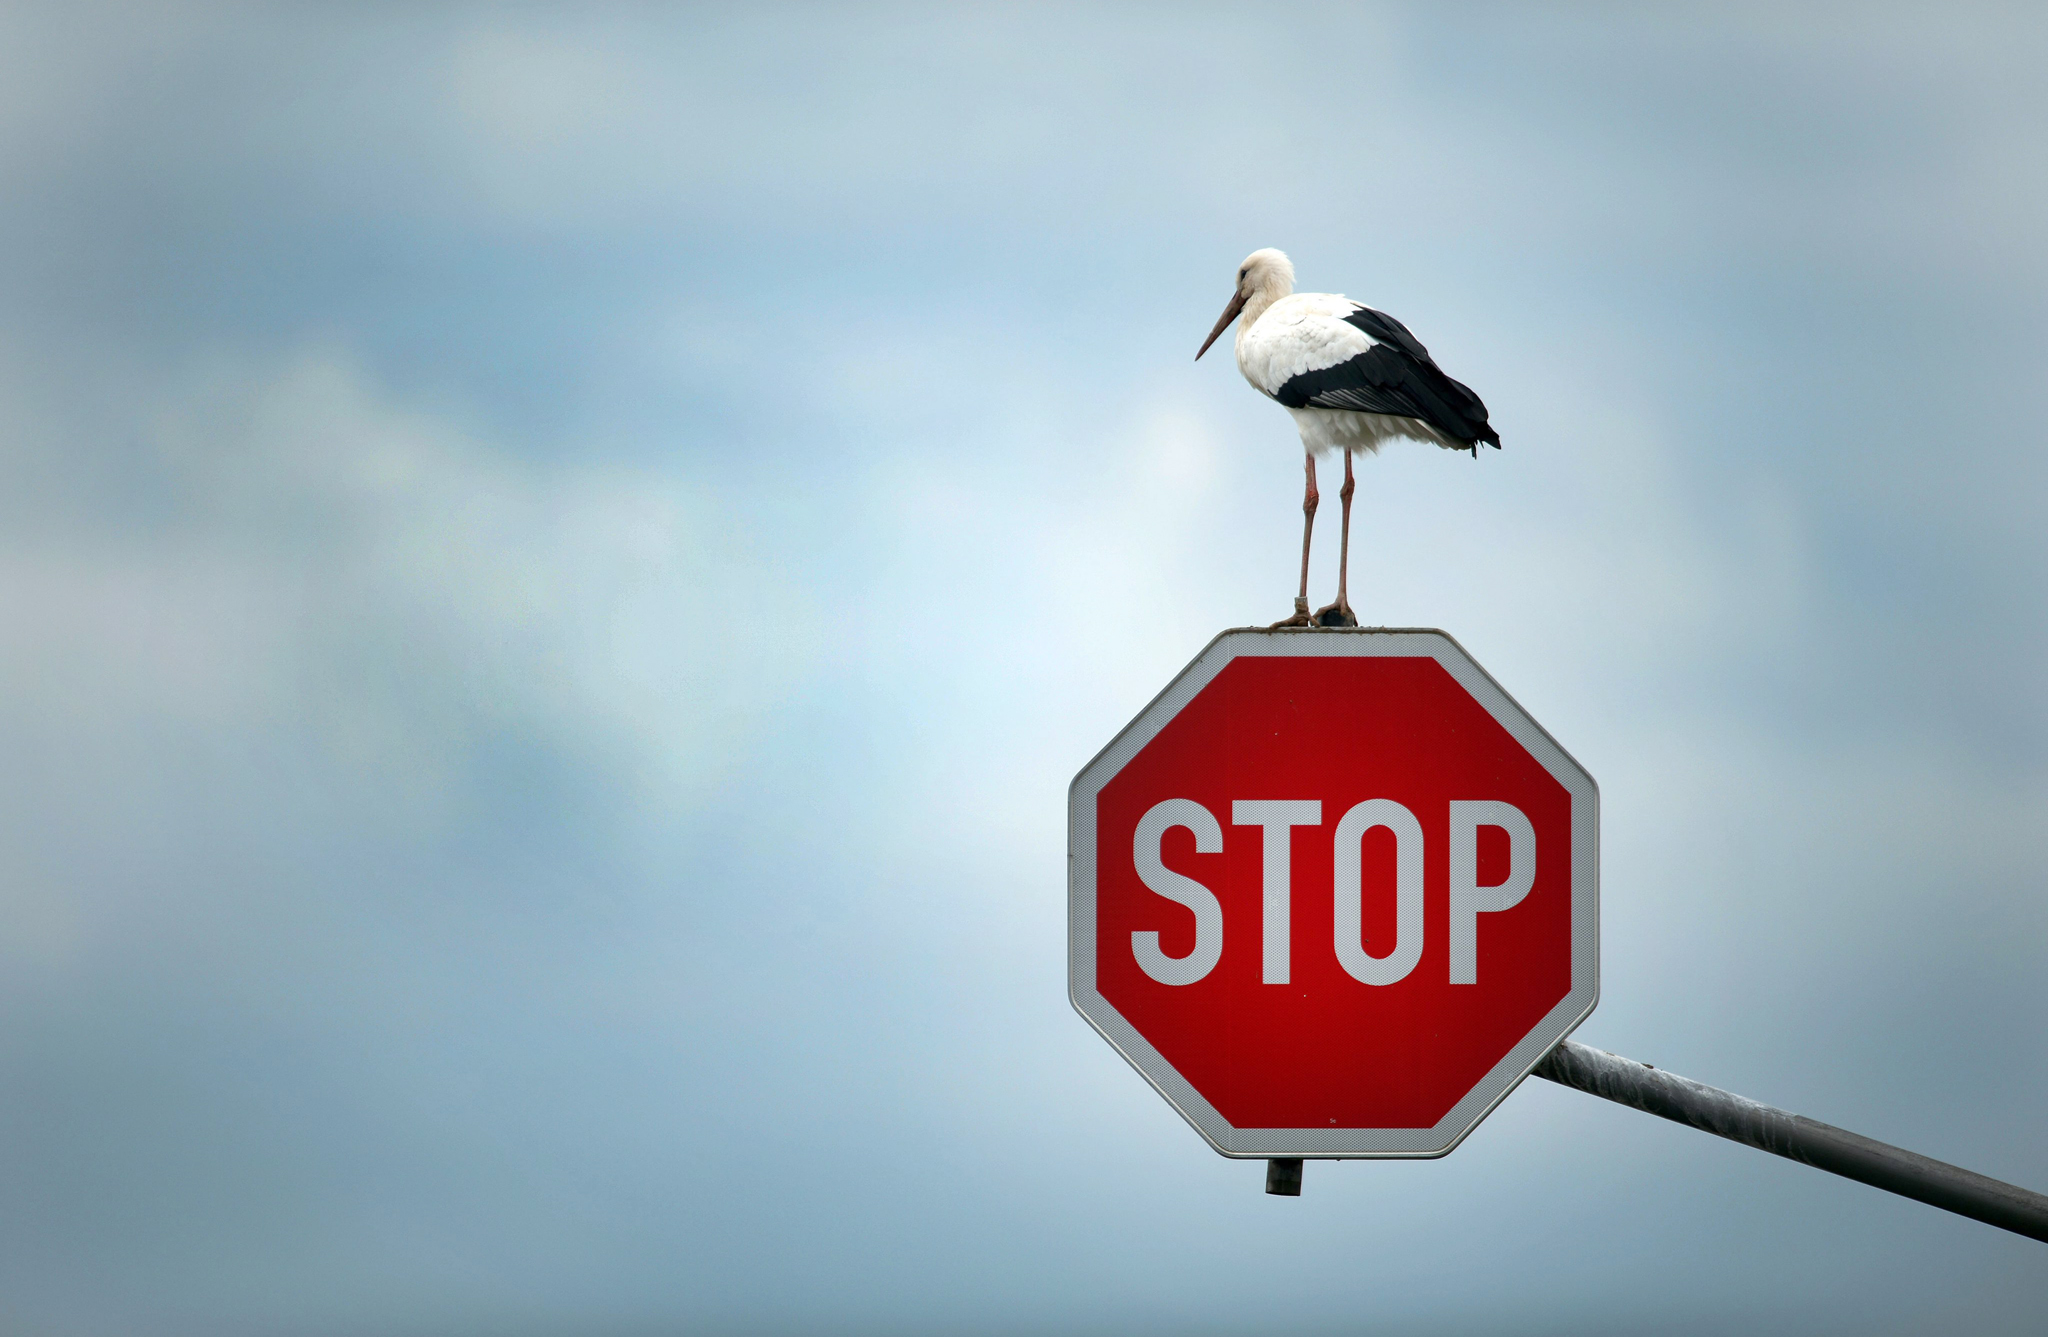 White Stork on stop sign...epa03910744 A stork perches on a stop sign near Immerath, Germany, 15 October 2013, before continuing his journey to search for his favourite food targets - mice, frogs and other small animals.  EPA/FEDERICO GAMBARINI